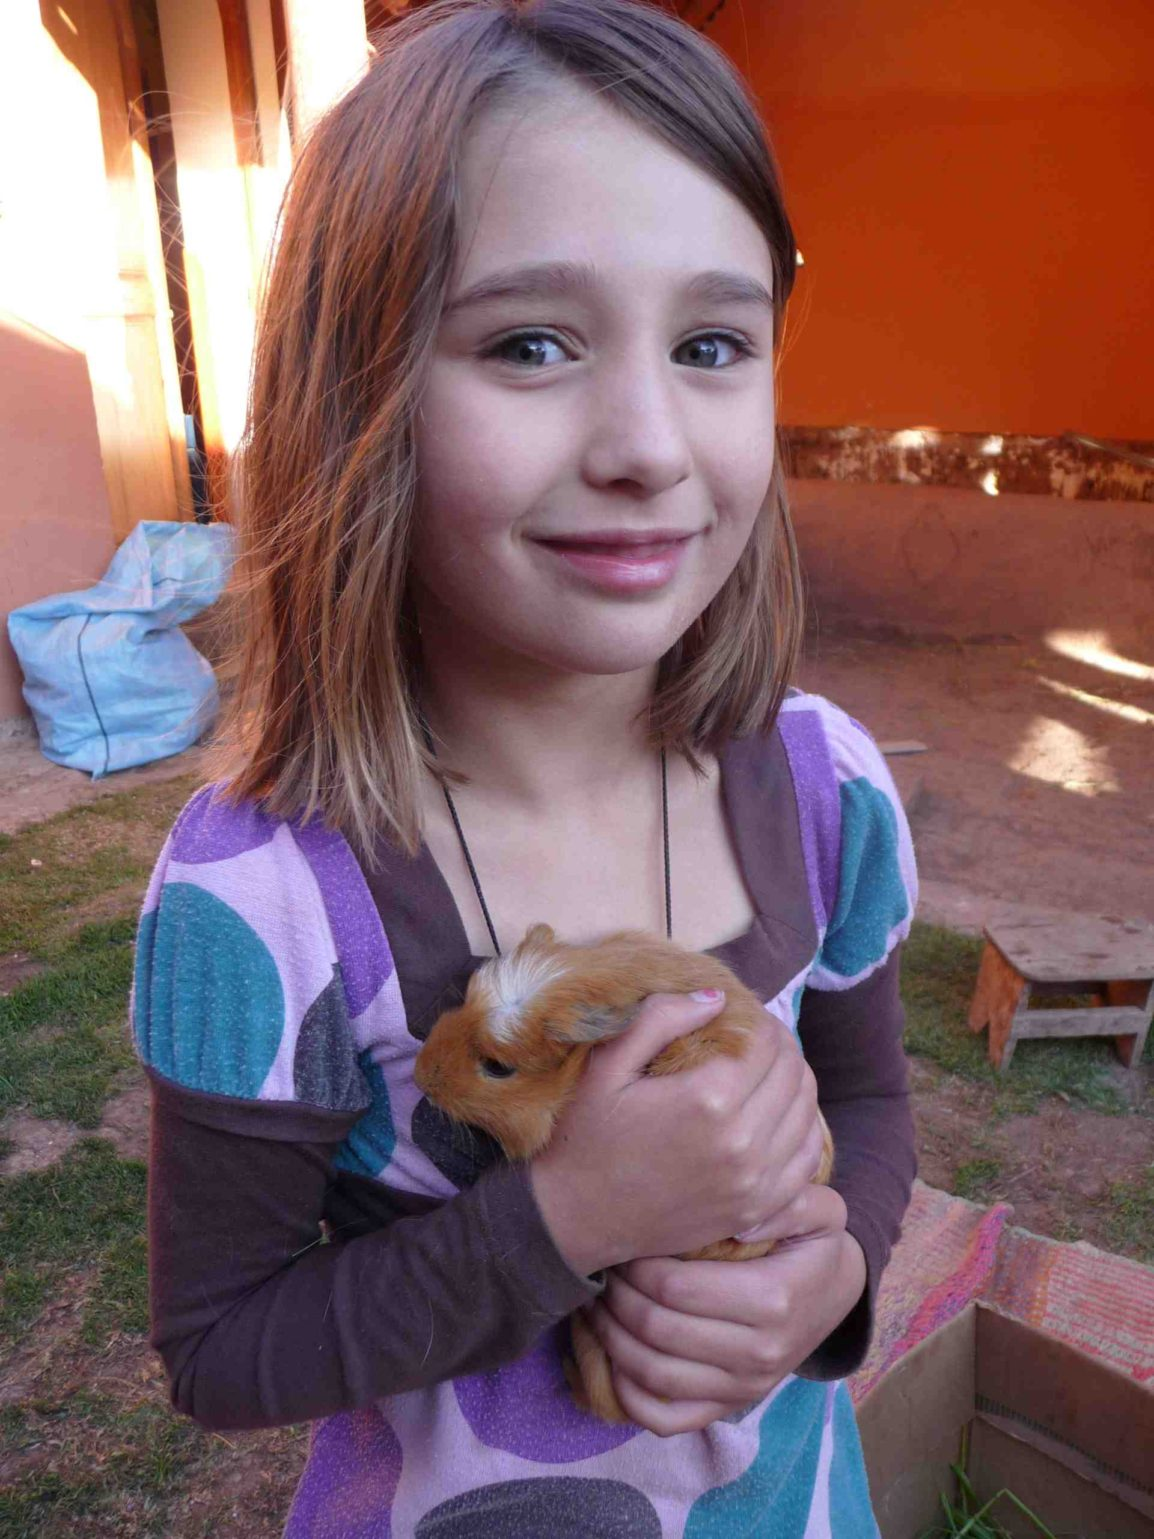 child guinea pig Peru travel